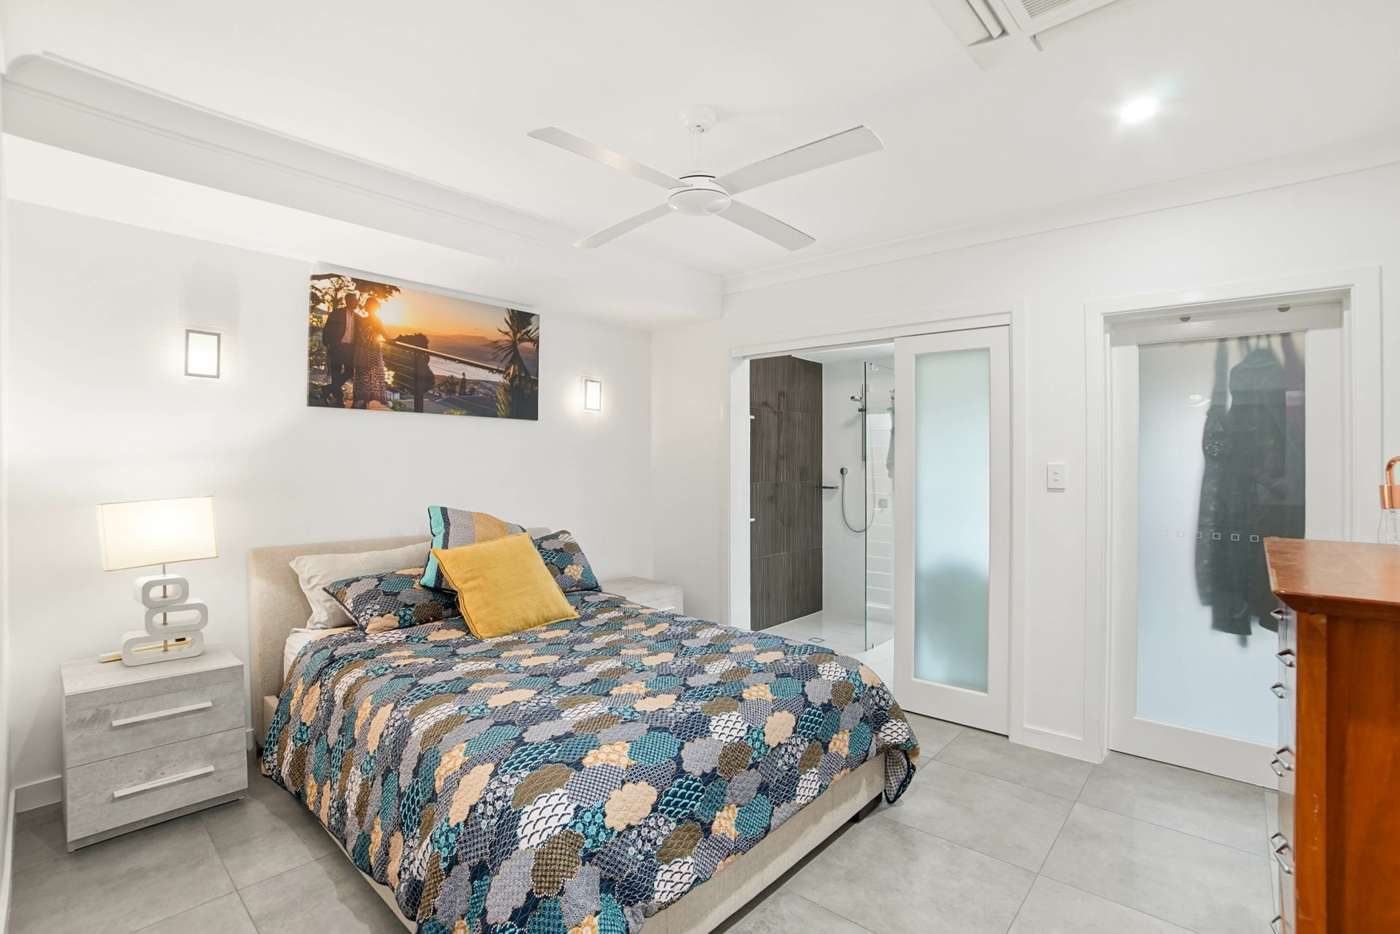 Seventh view of Homely house listing, 11 Ponticello Street, Whitfield QLD 4870